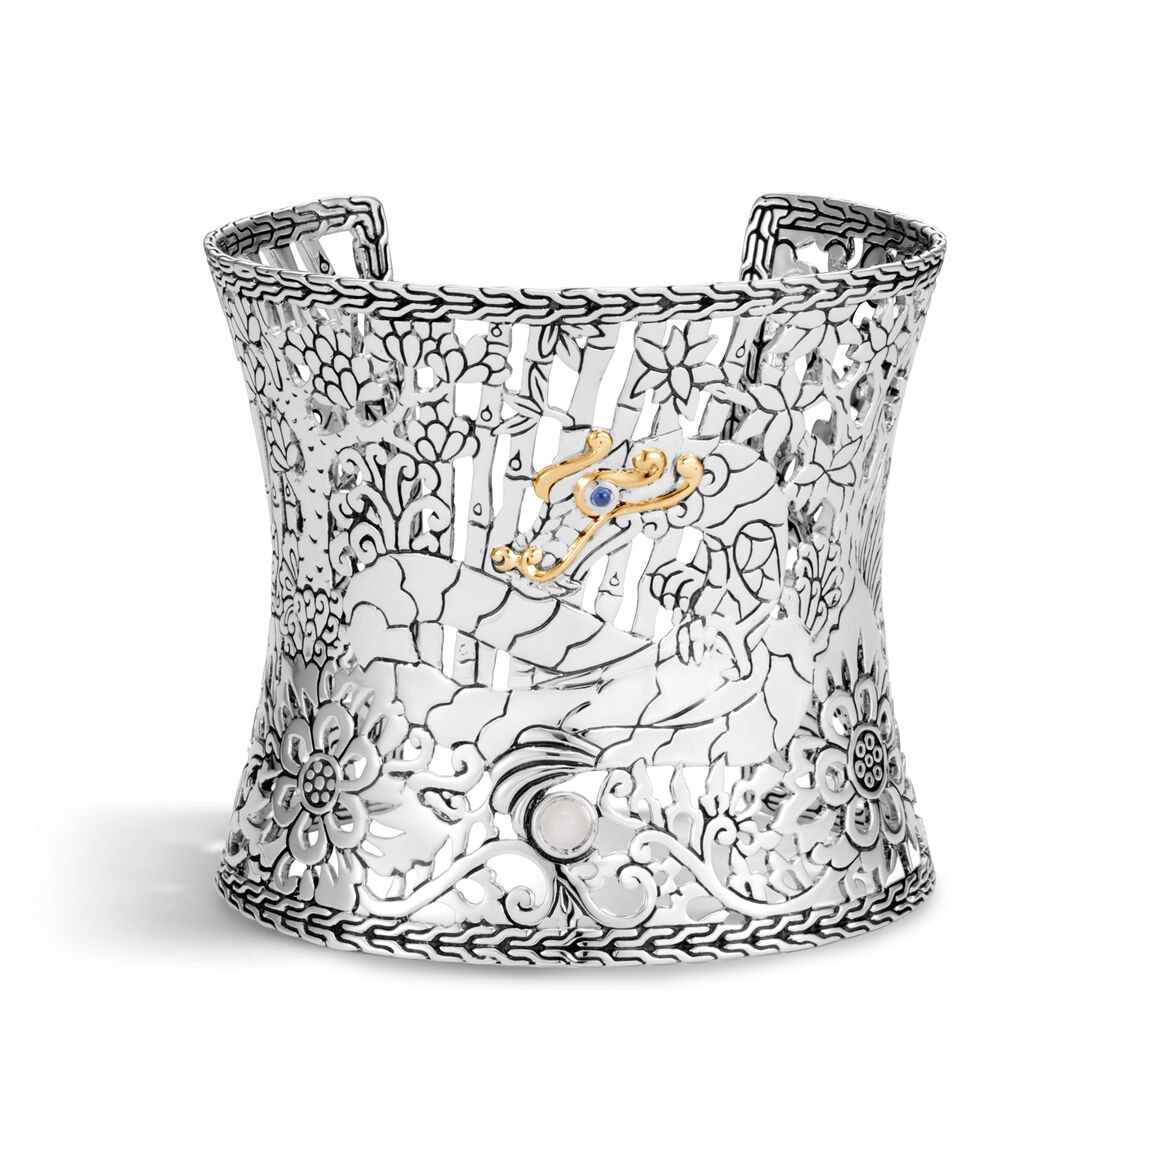 Legends Naga 64MM Cuff in Silver and 18K Gold with Gemstone